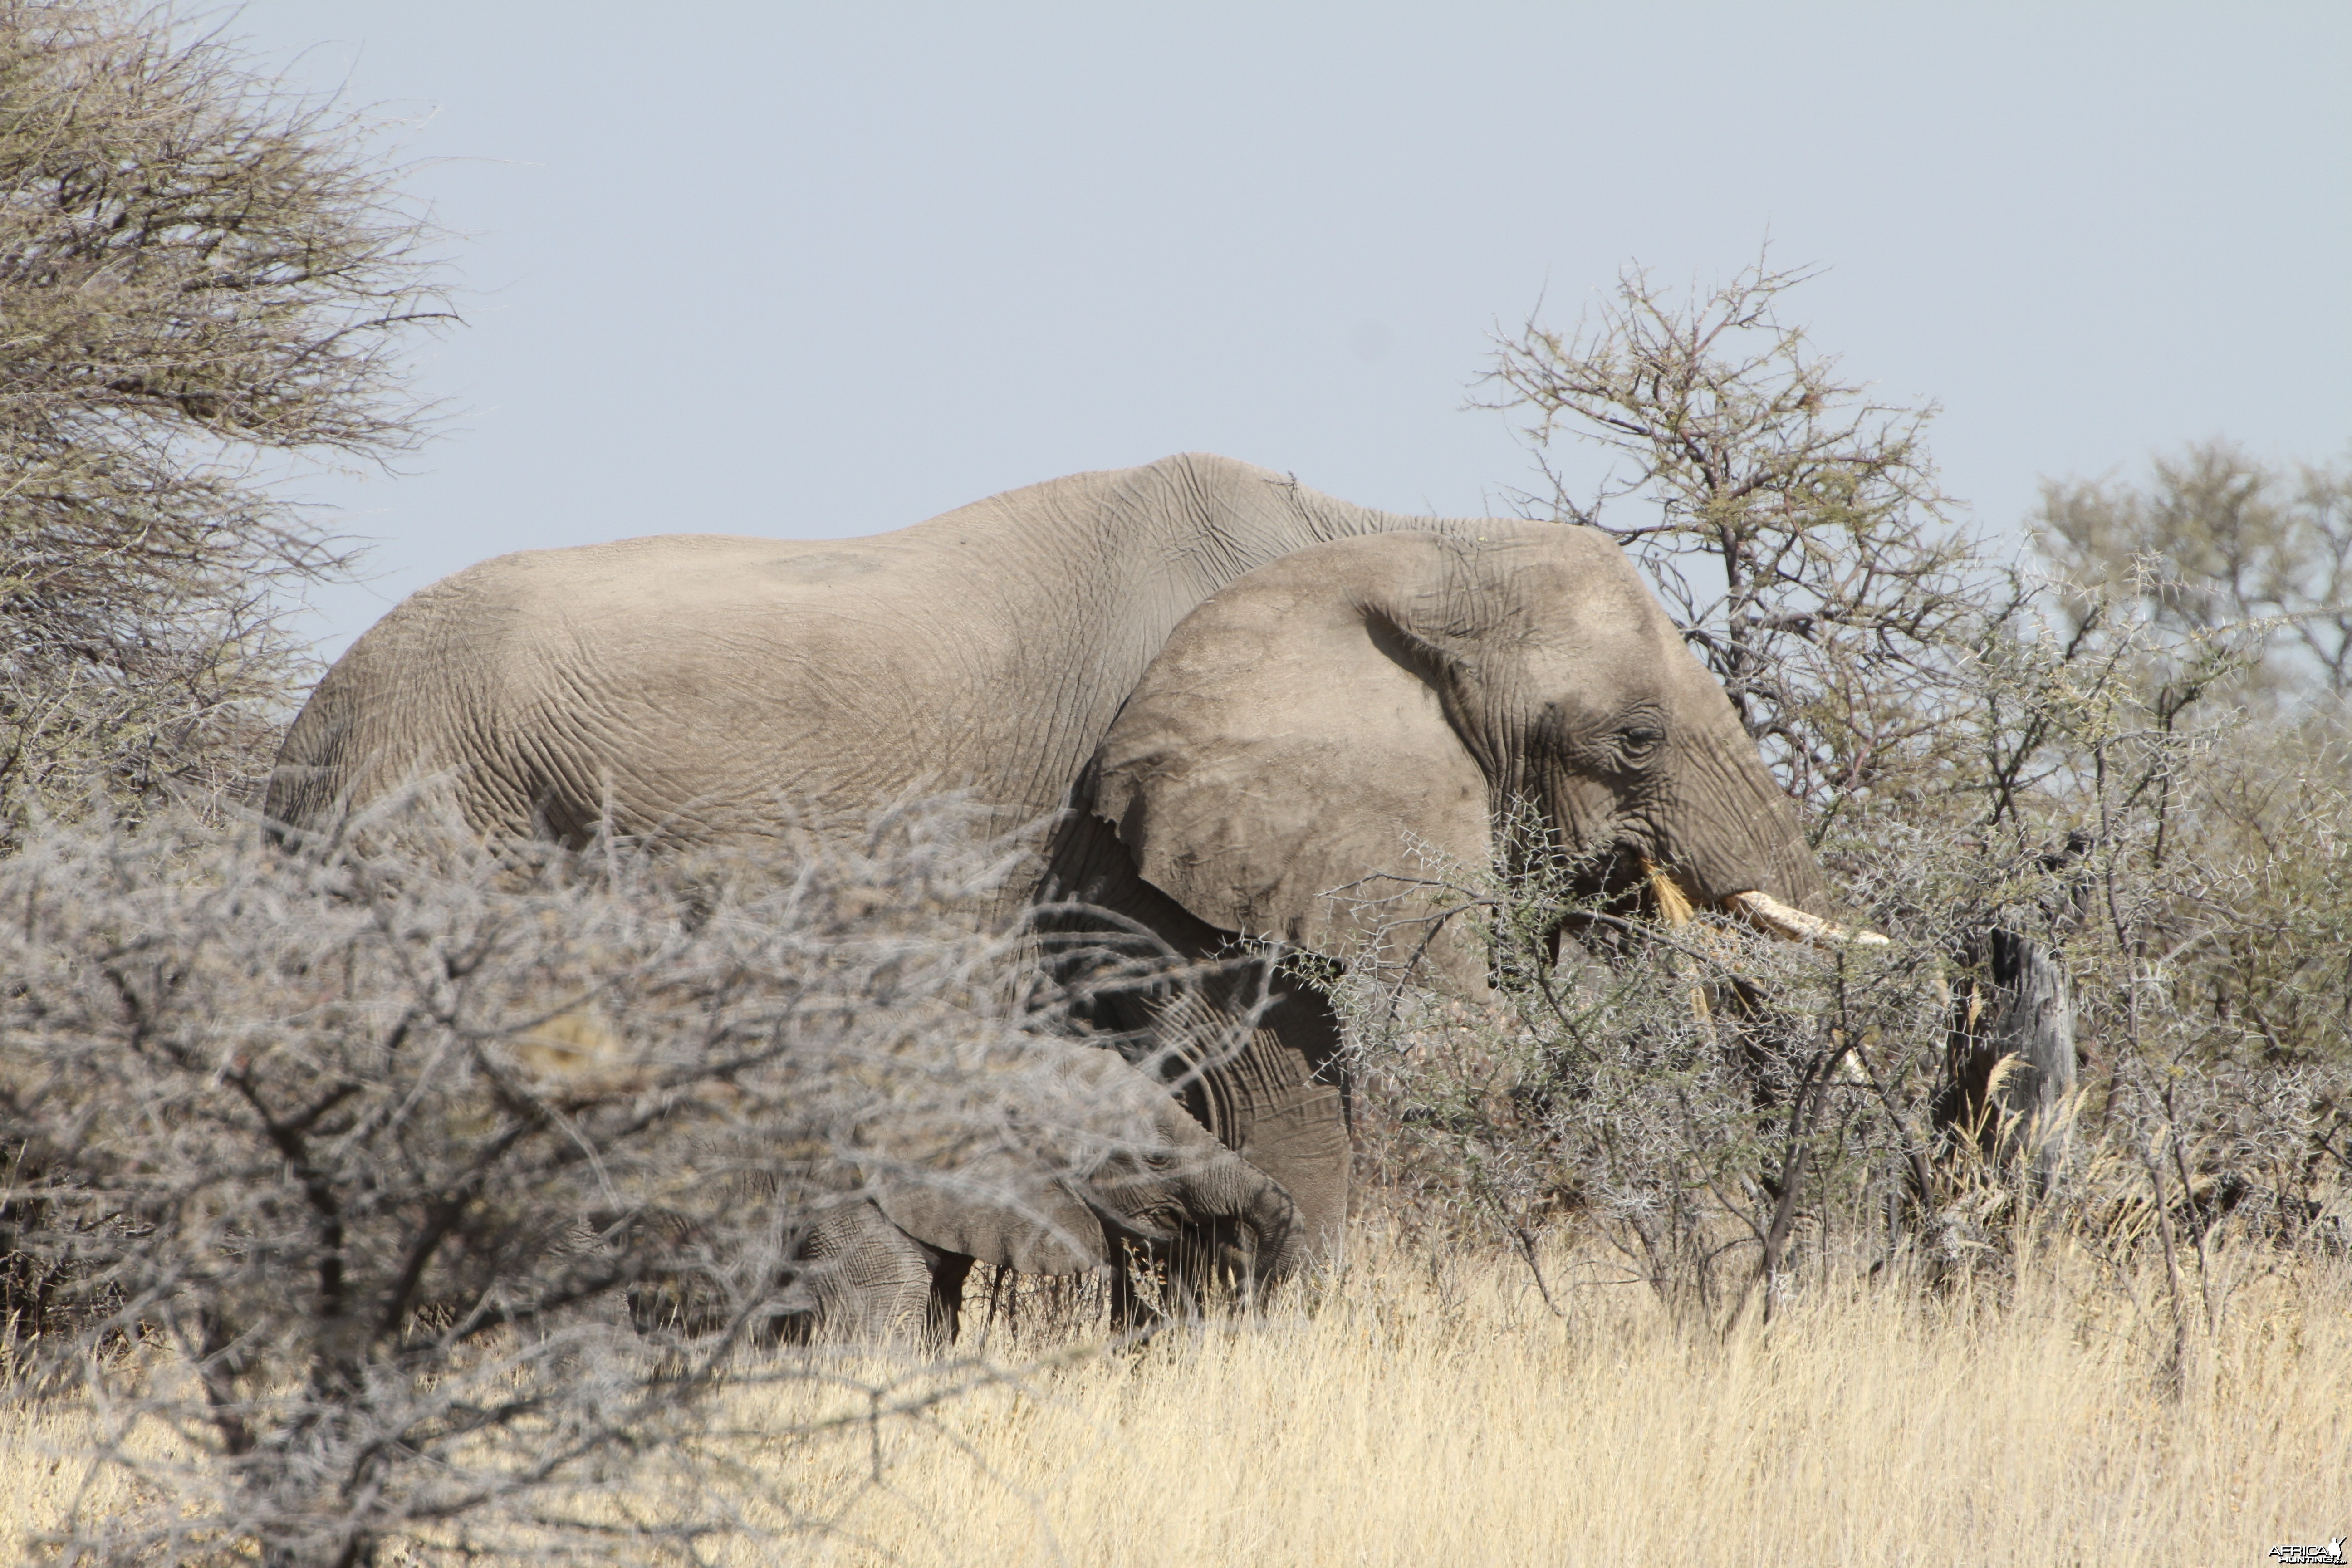 Elephant at Etosha National Park